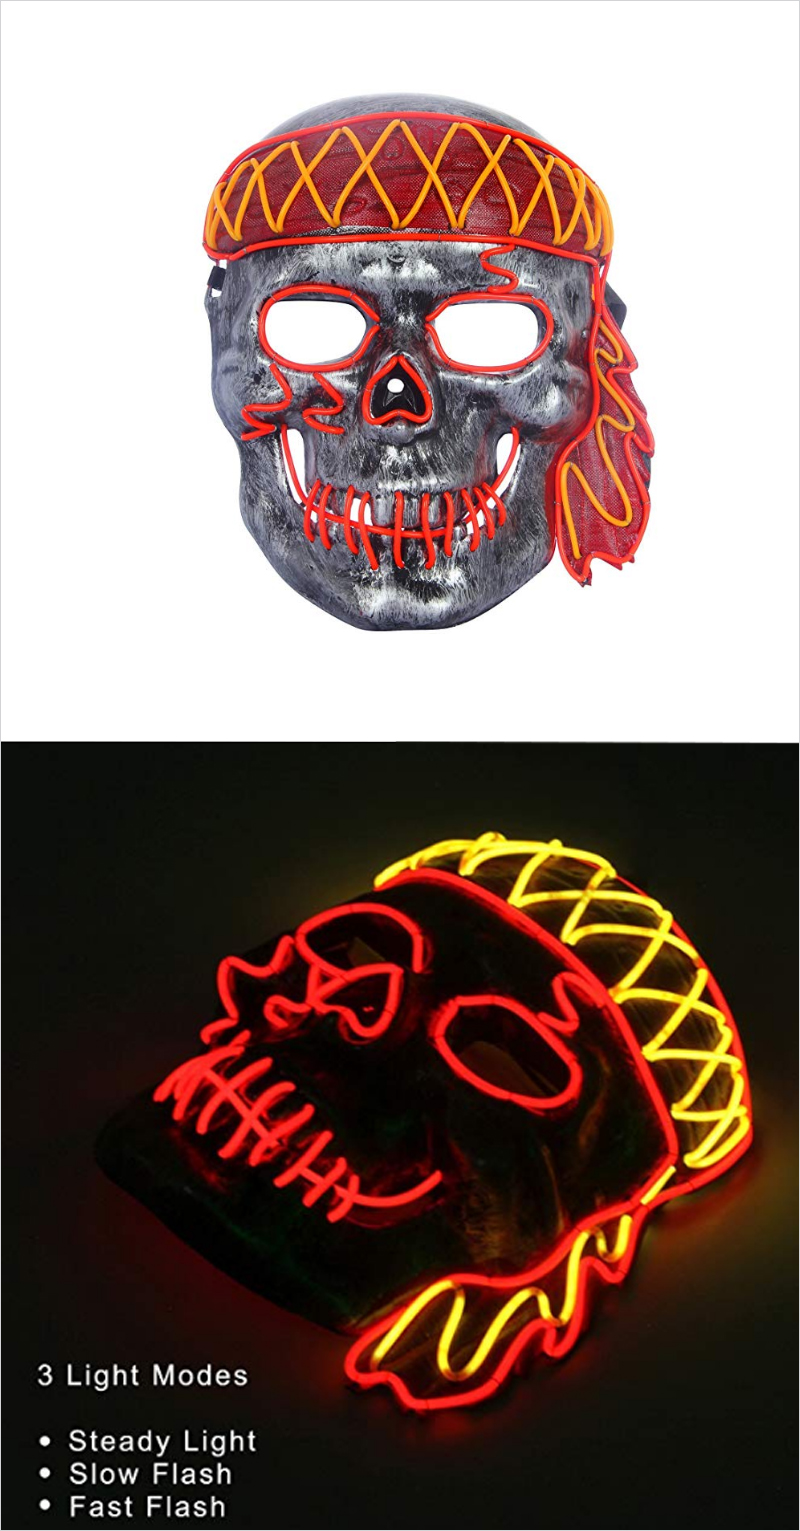 Mens-LED-Light-up-Mask-Halloween-Party